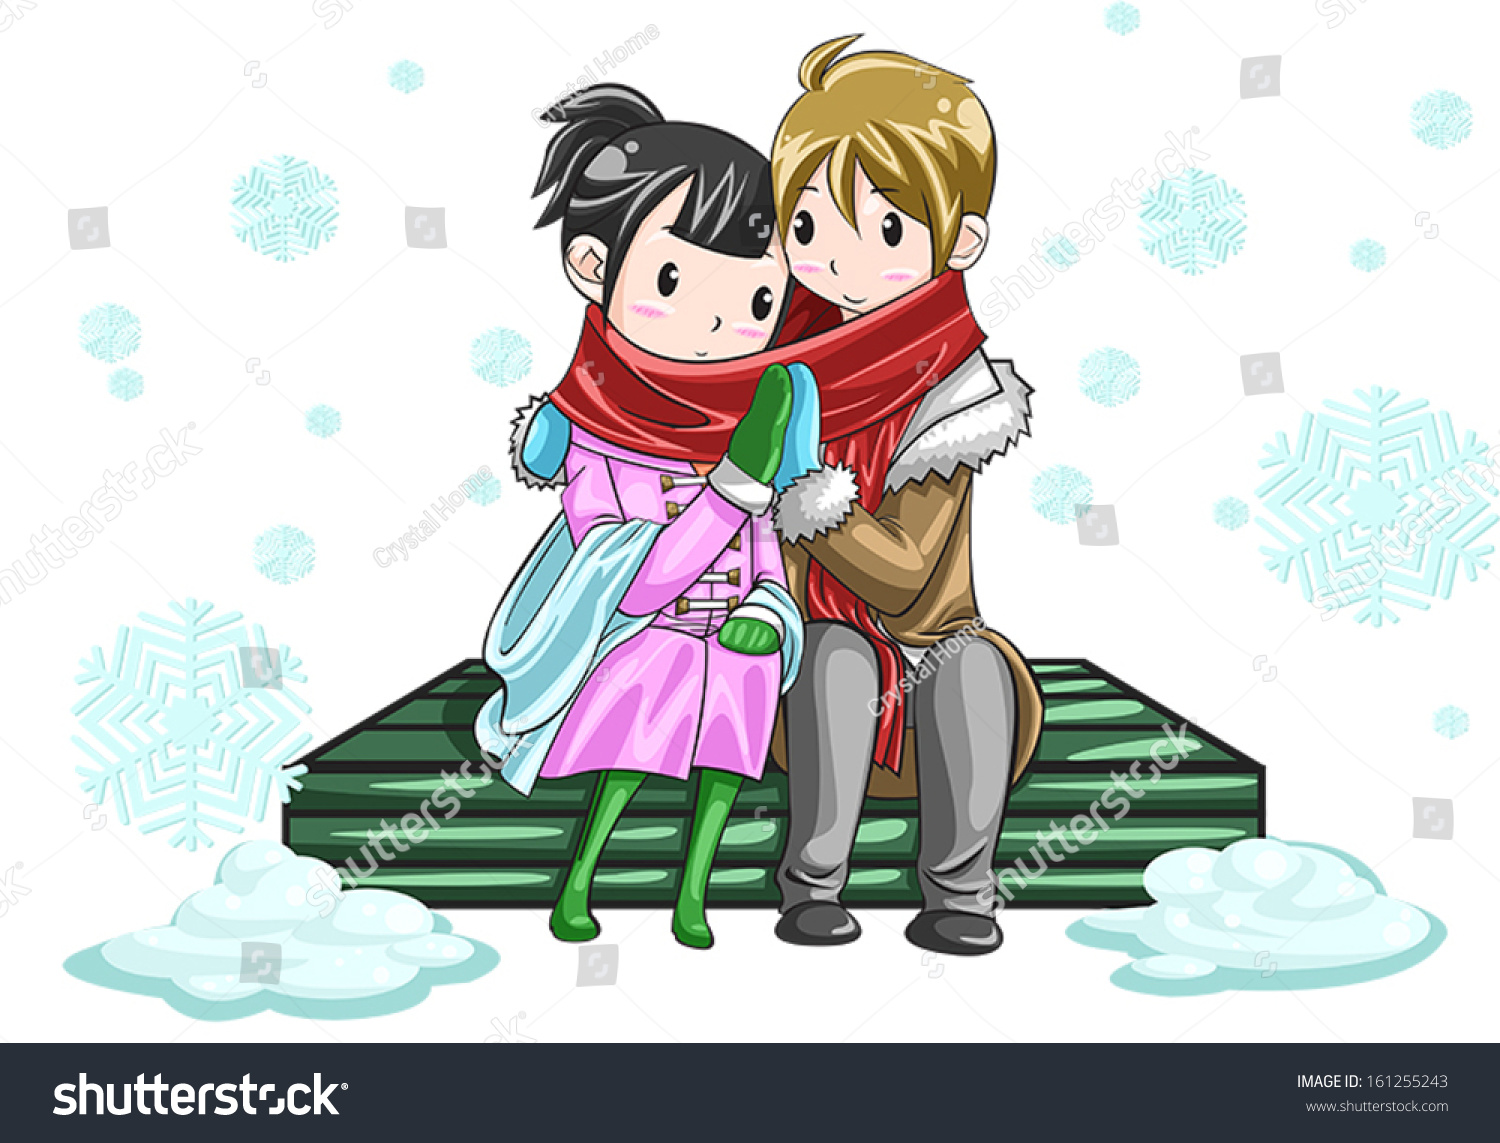 Cute teenage lover couple boyfriend girlfriend sharing their warmth love by hands in white snowy isolated